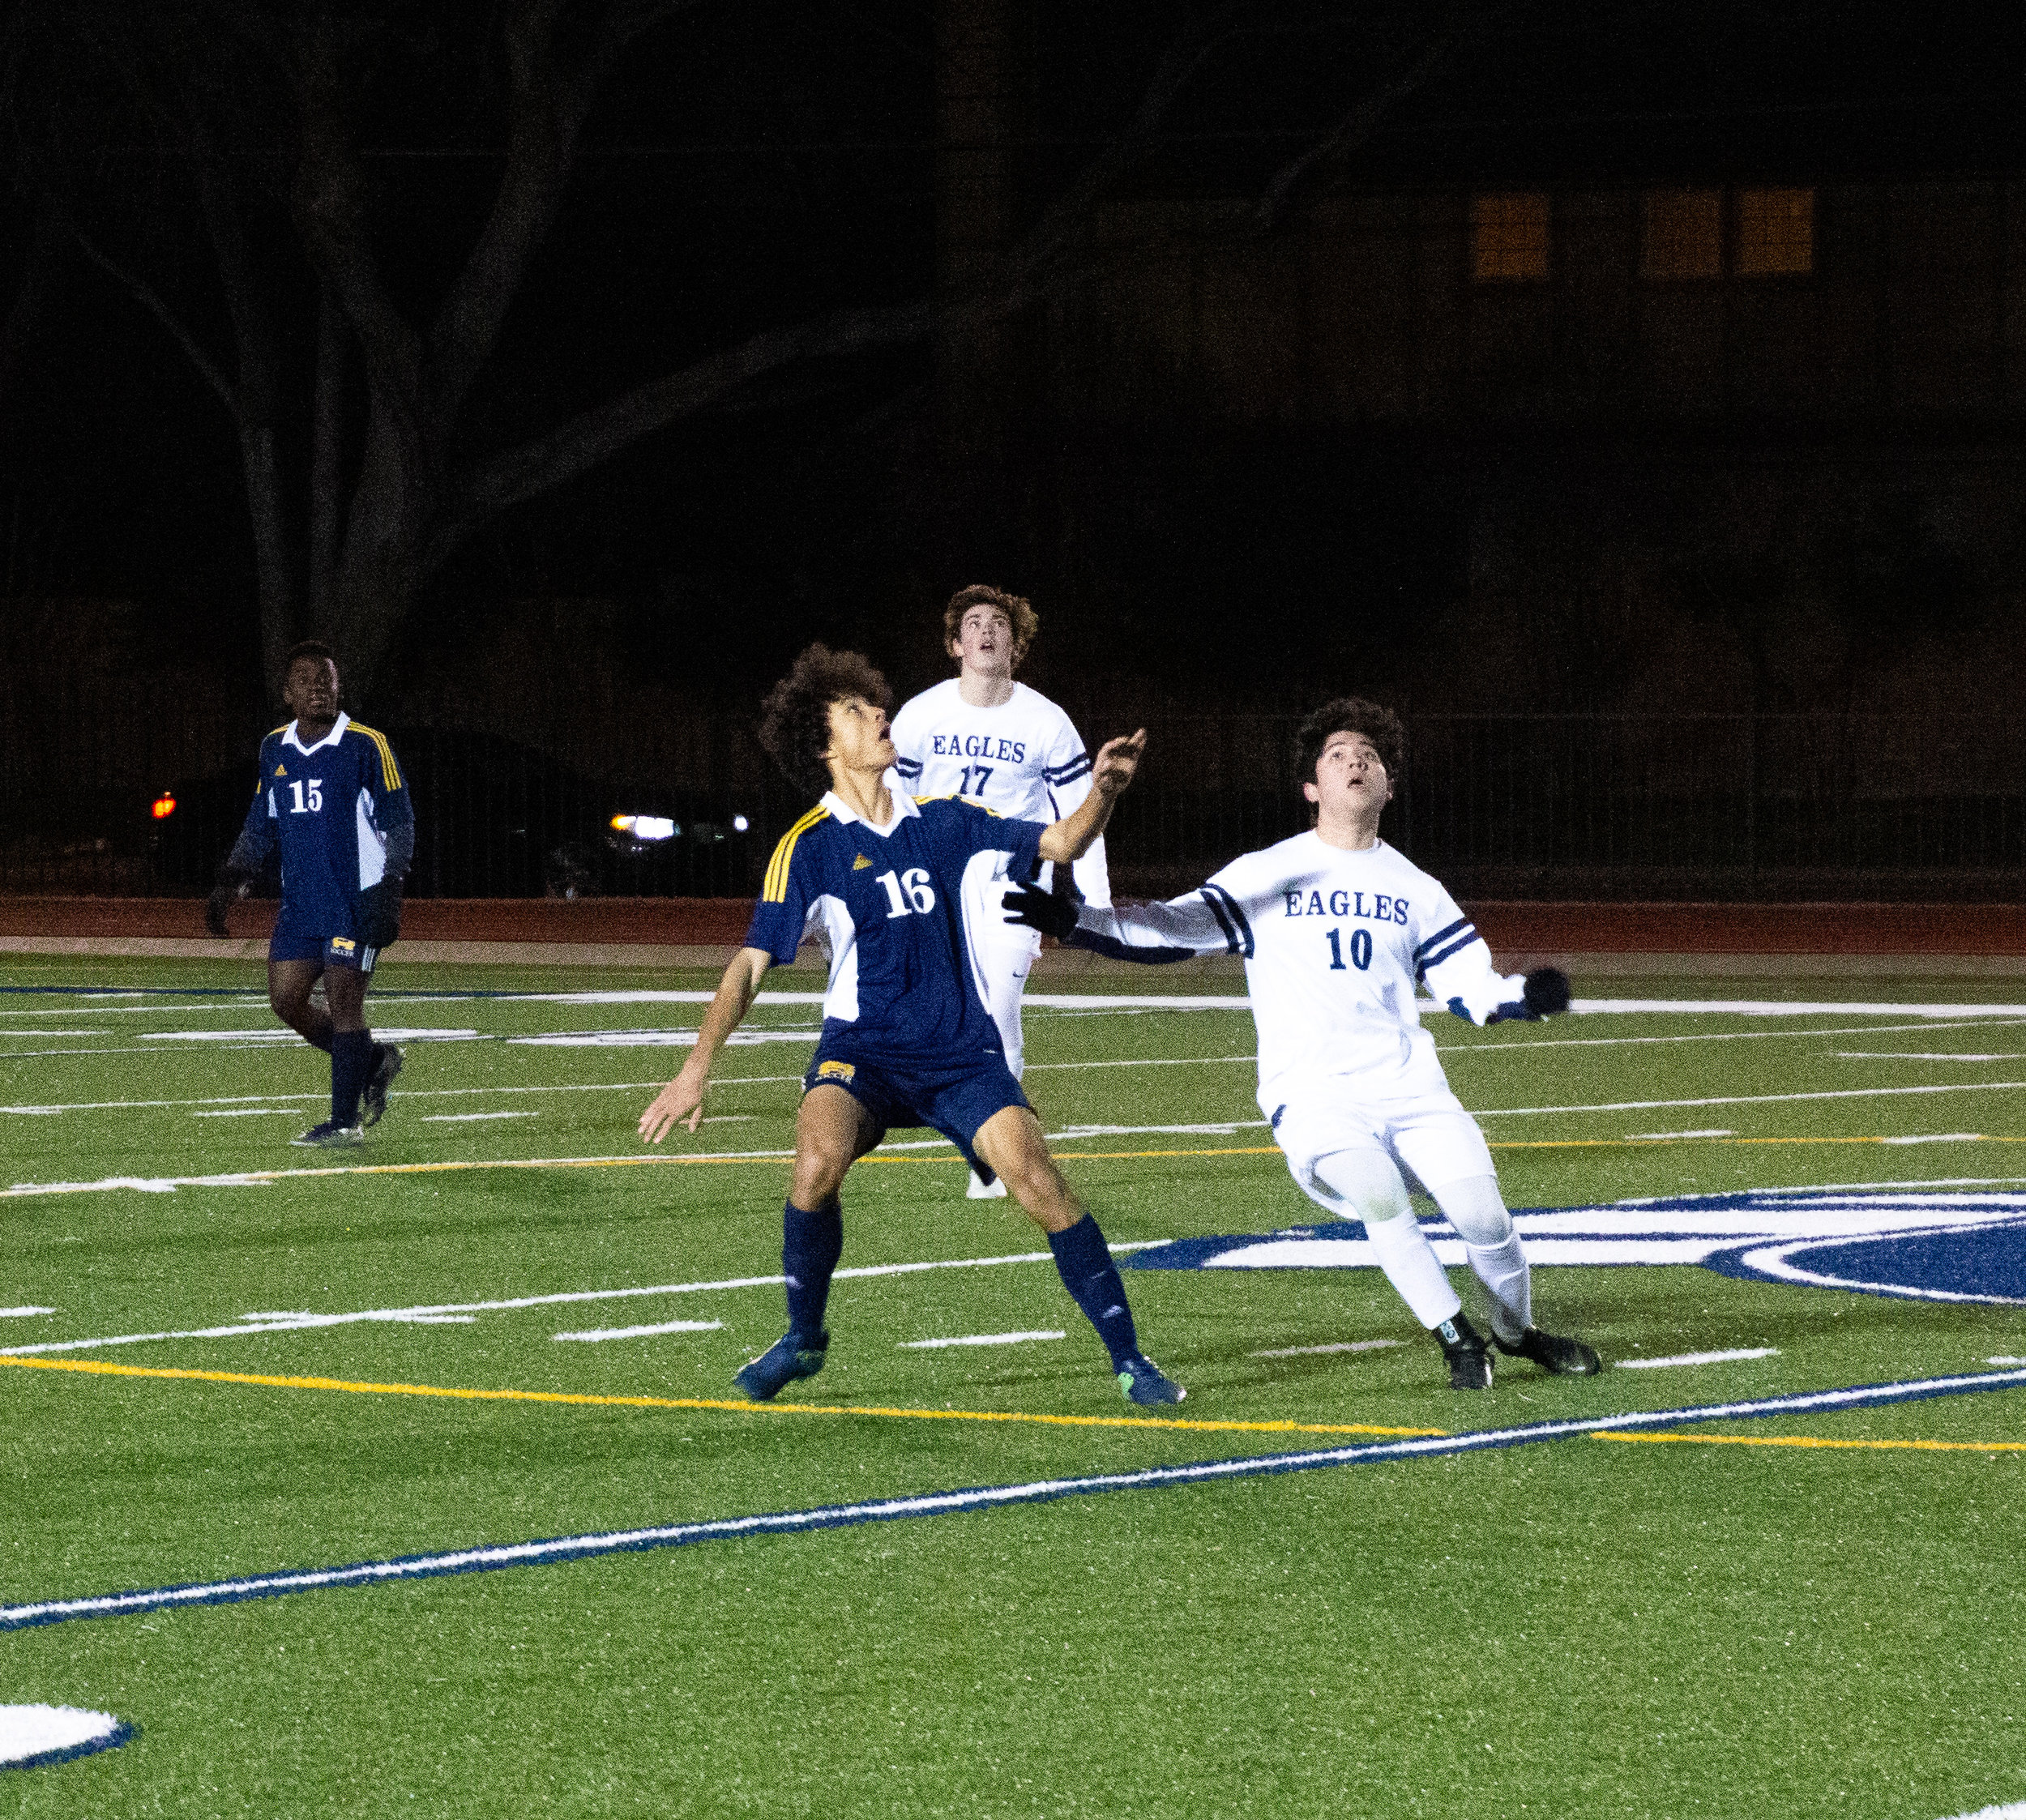 Junior midfielder Miles Hartley fights off and ESD defender as he prepares to head the ball back across the 50-yard line.